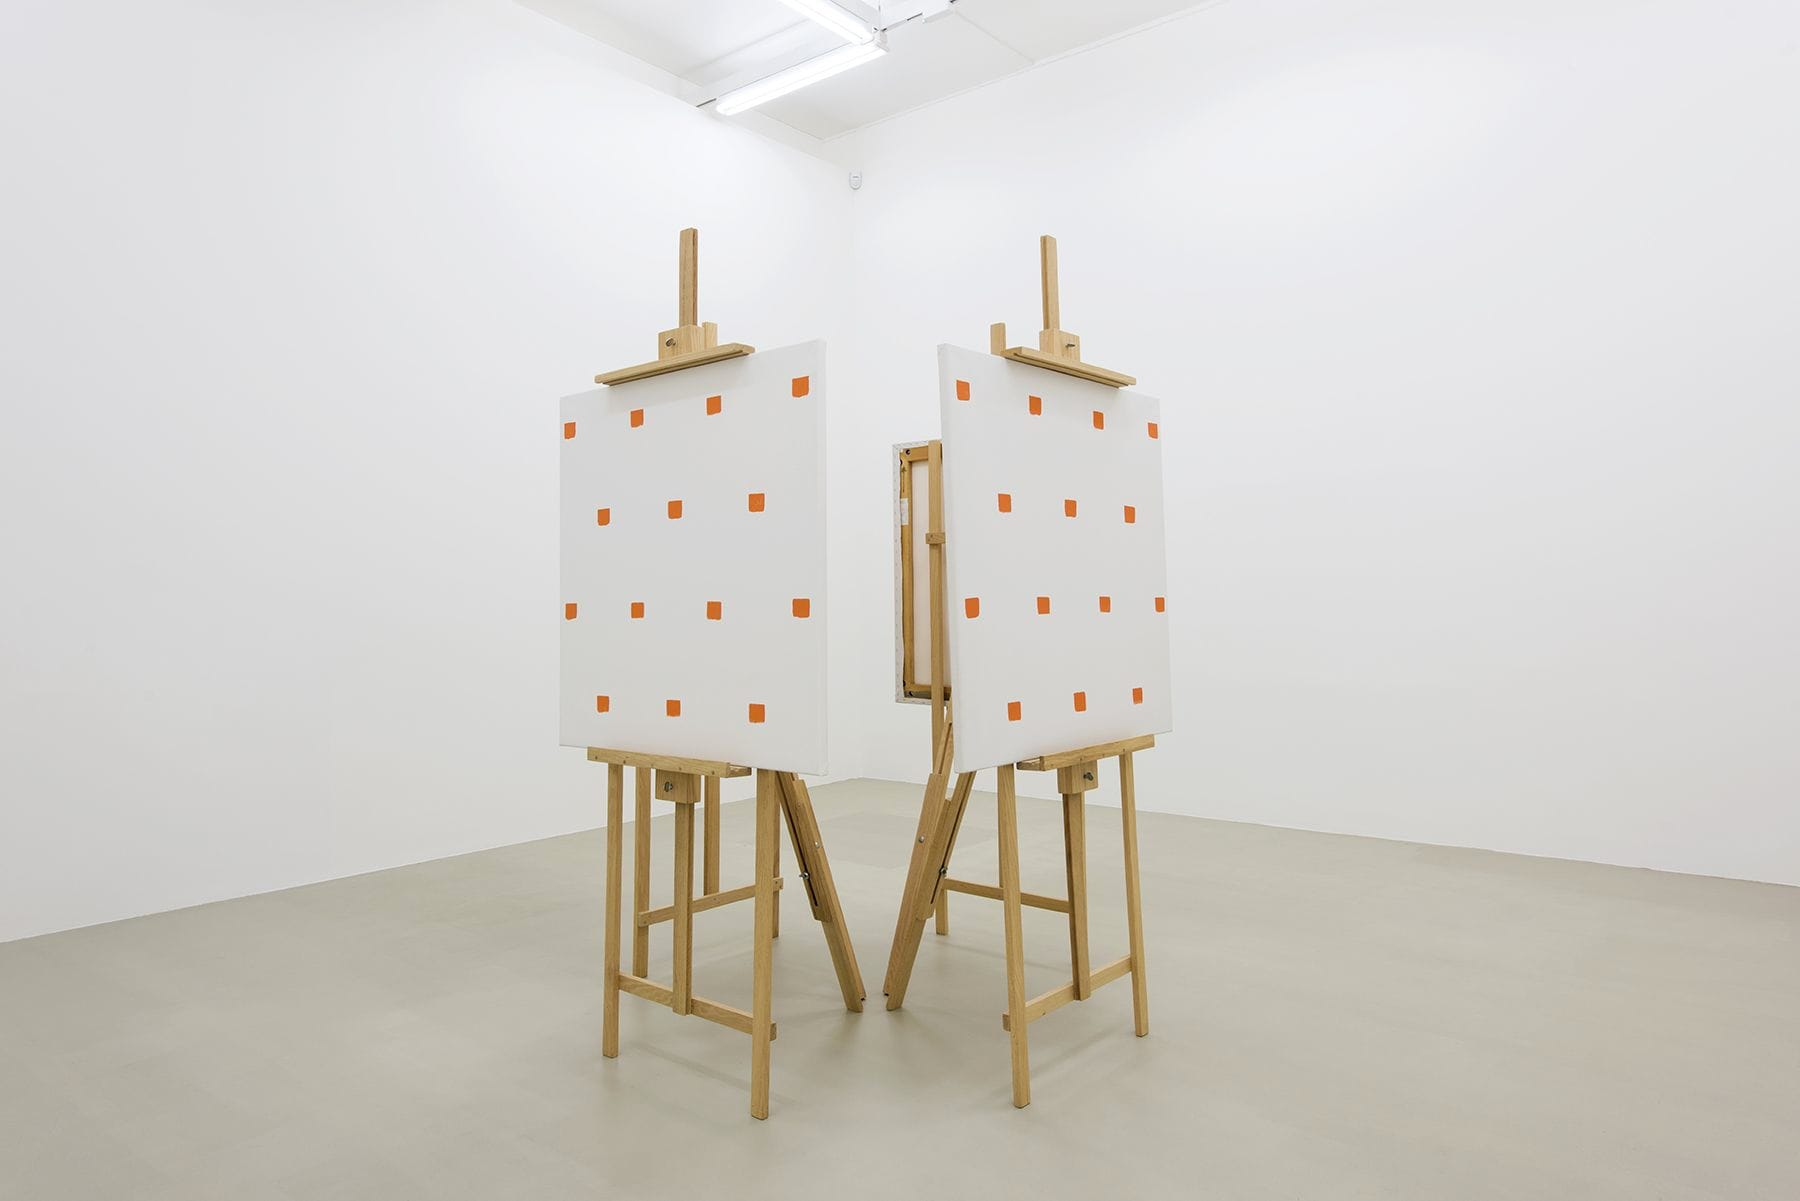 Gallery view of hour outwardly facing wooden easels displaying four canvases, with rows of equidistant square red brush strokes.